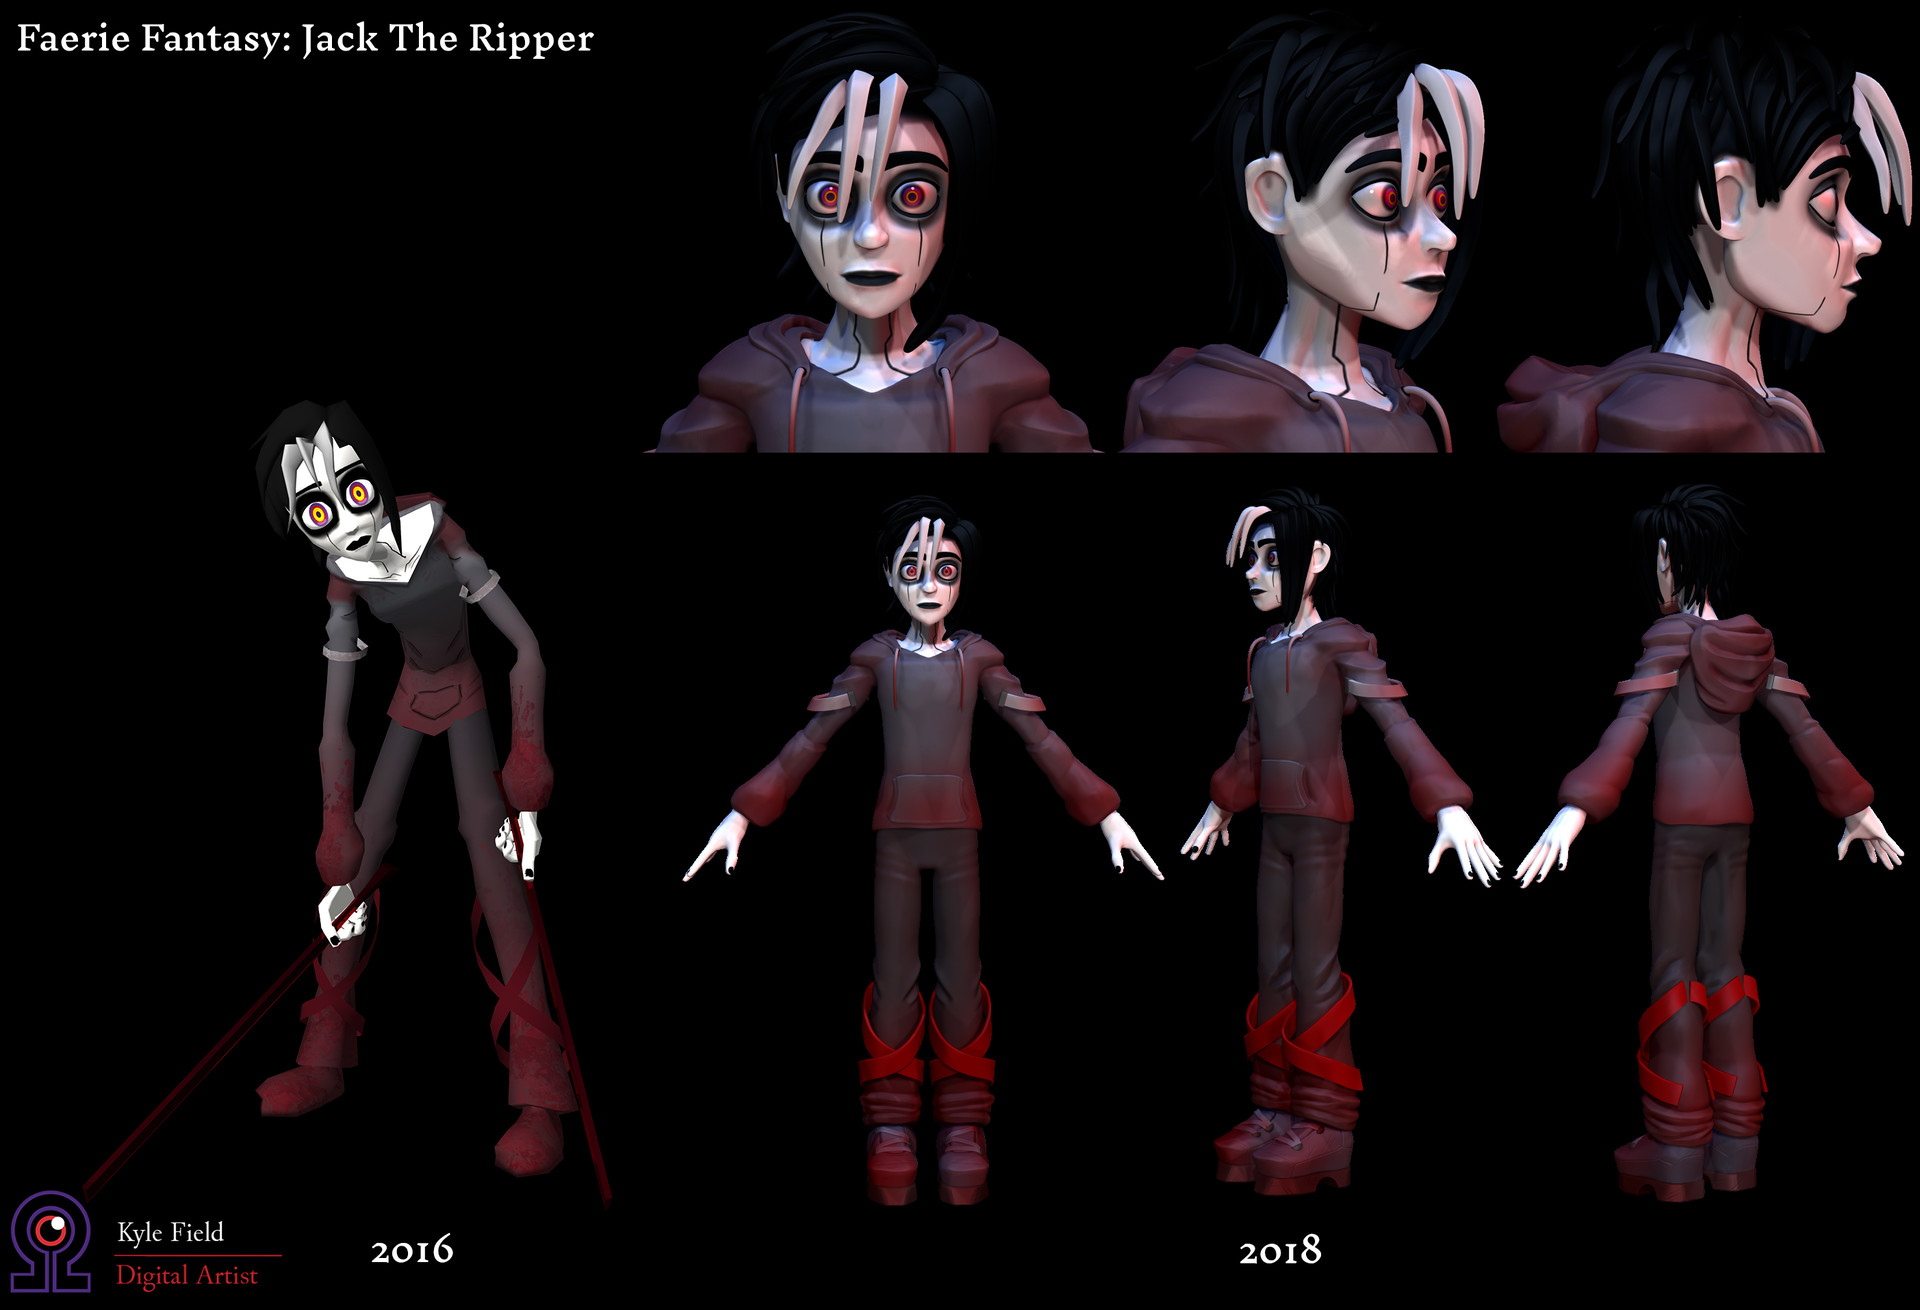 Comparison between original model from 2016 and current ZBrush Sculpt